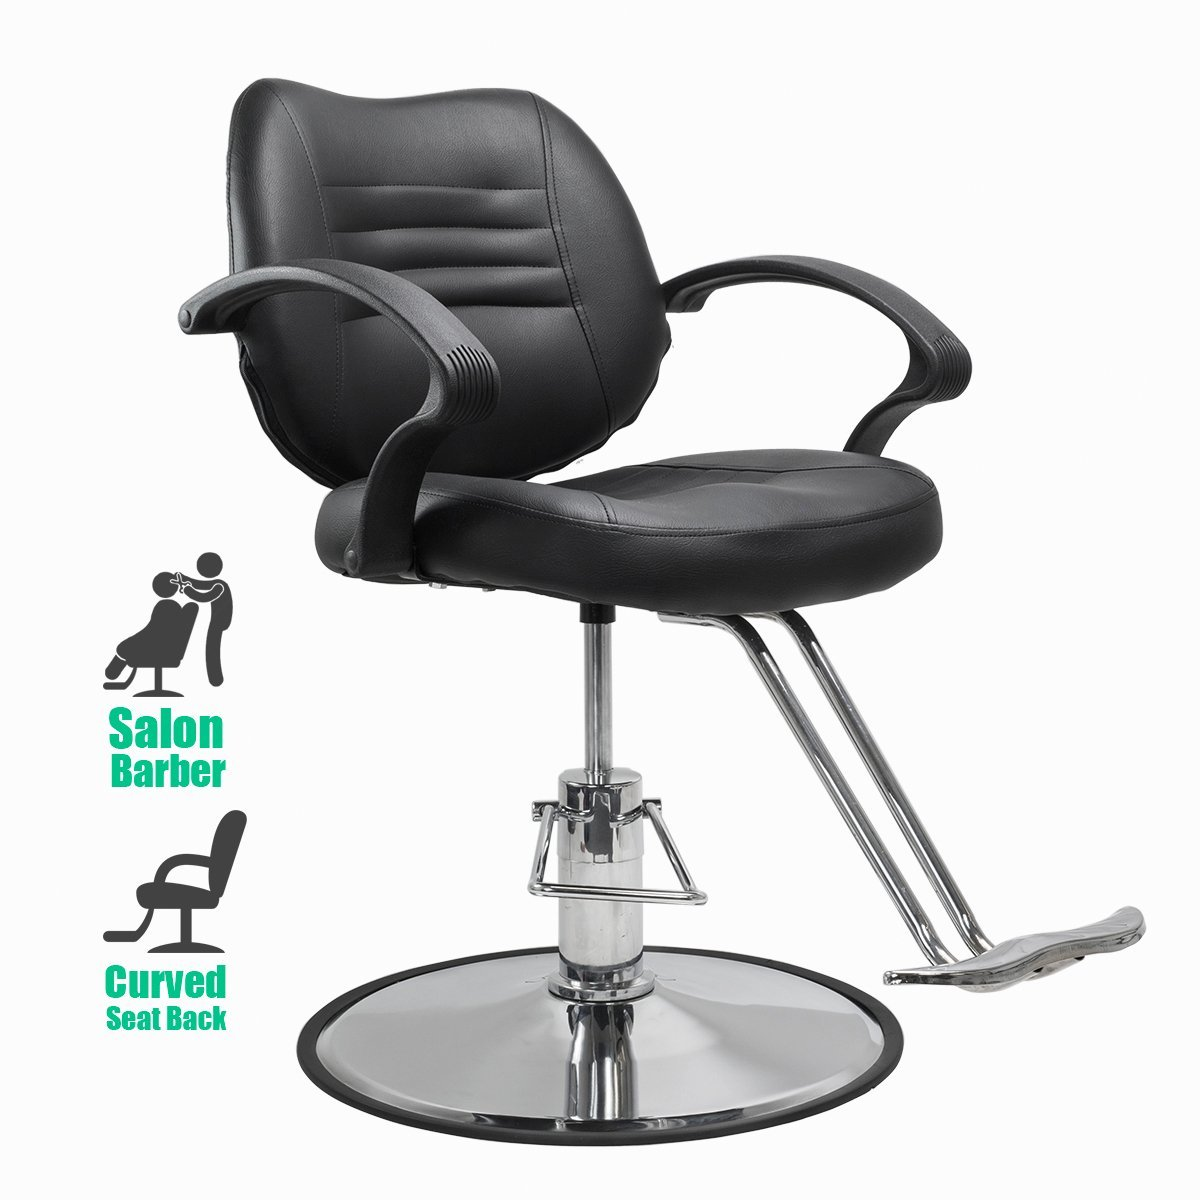 barber chair classic style hydraulic adjustment salon beauty equipment